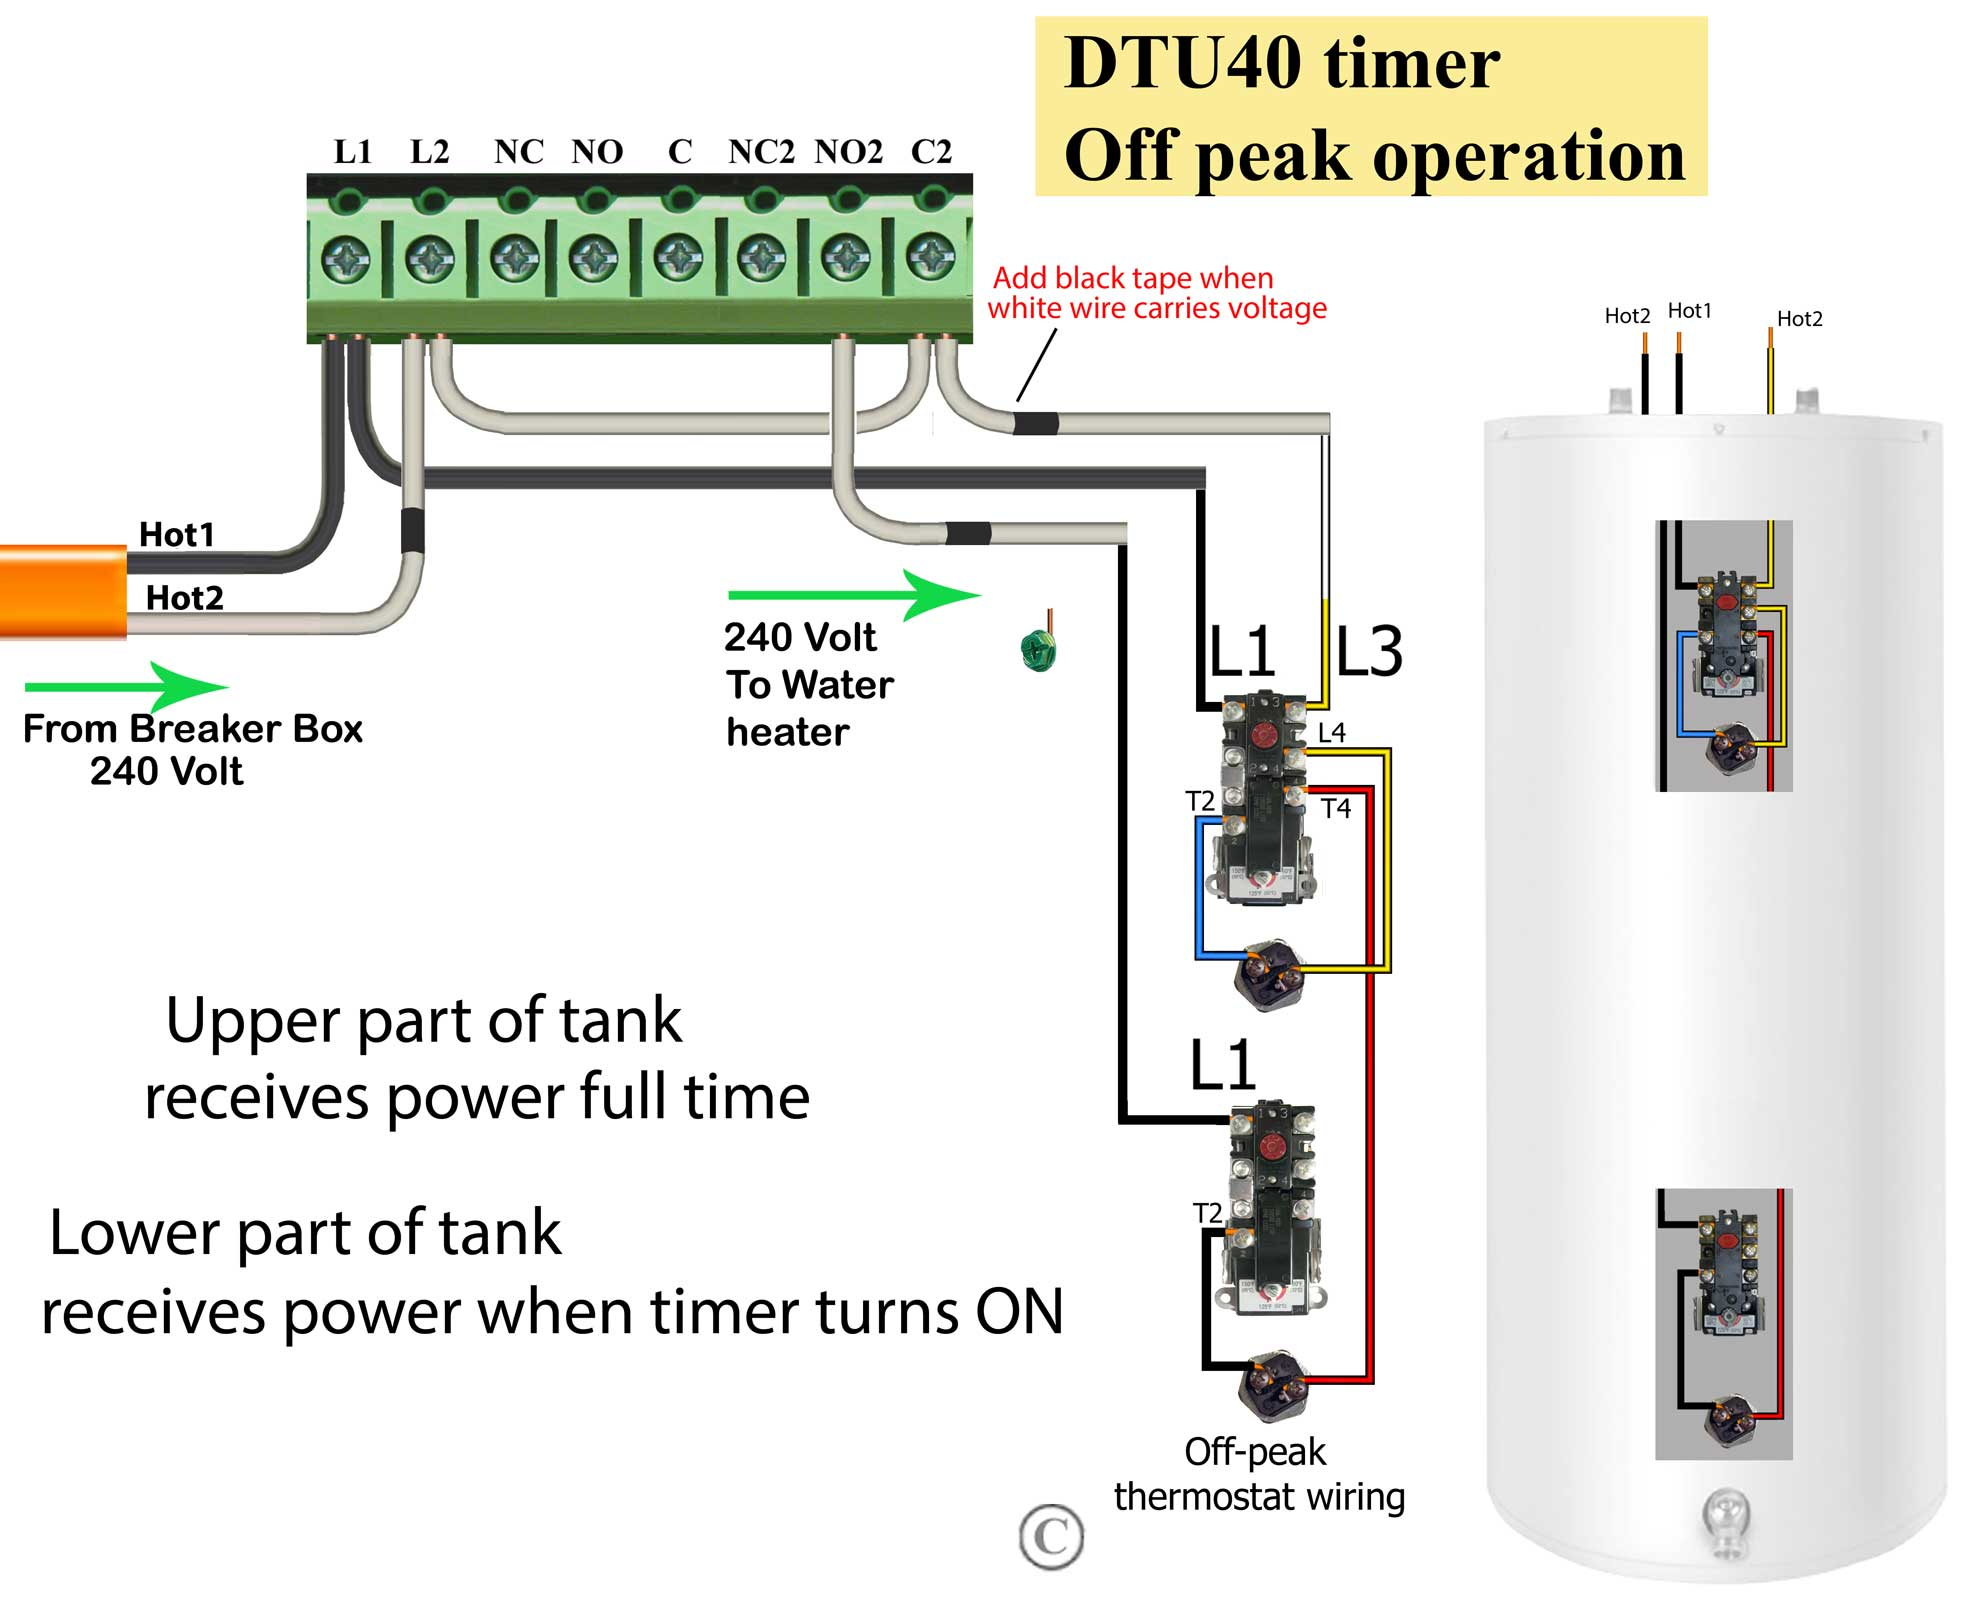 Tork DTU 240V circuit off peak how to wire water heater thermostat wiring diagram for water heater at crackthecode.co